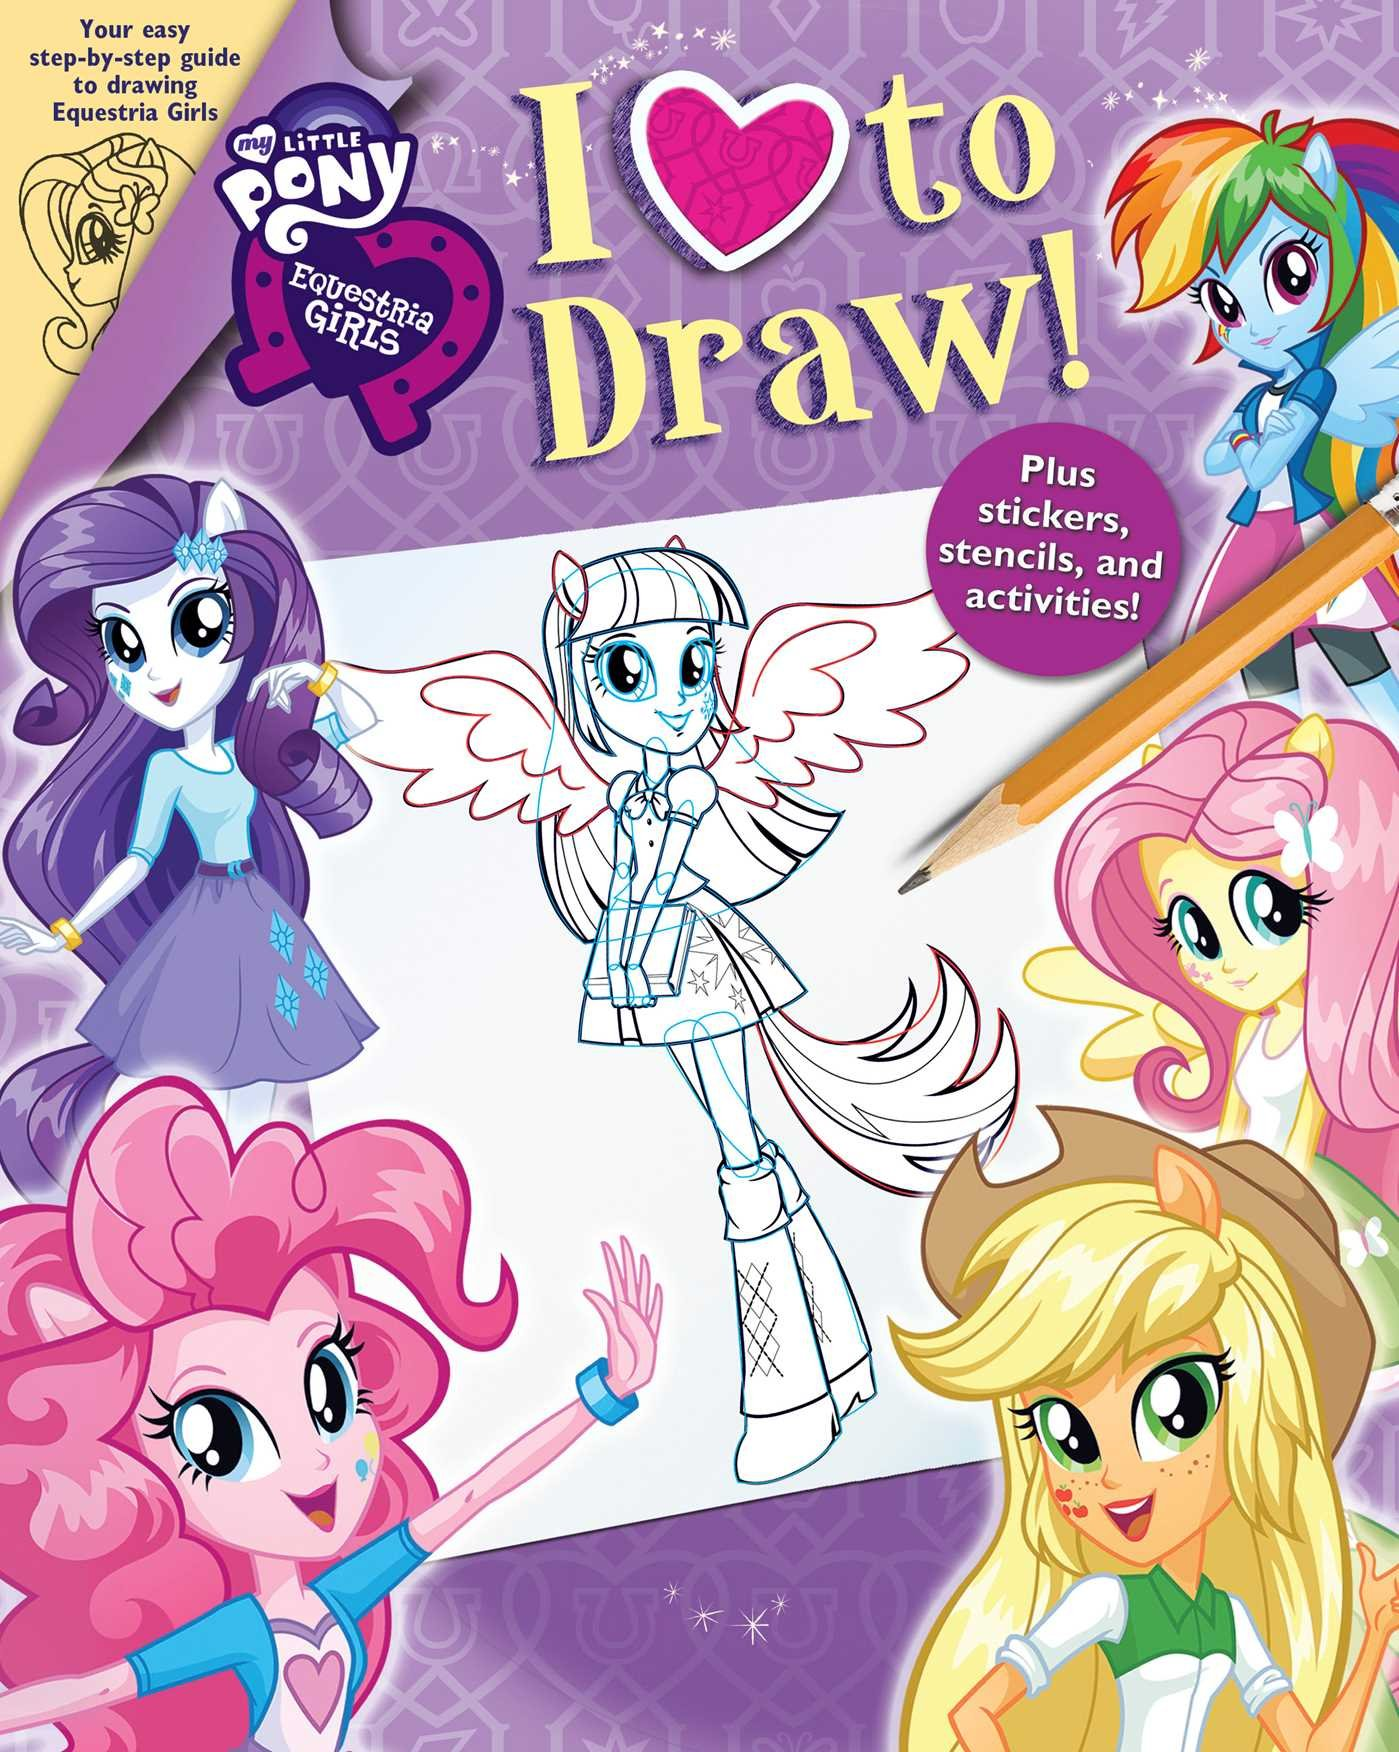 Drawn my little pony littel Books Little I Pony: Girls: